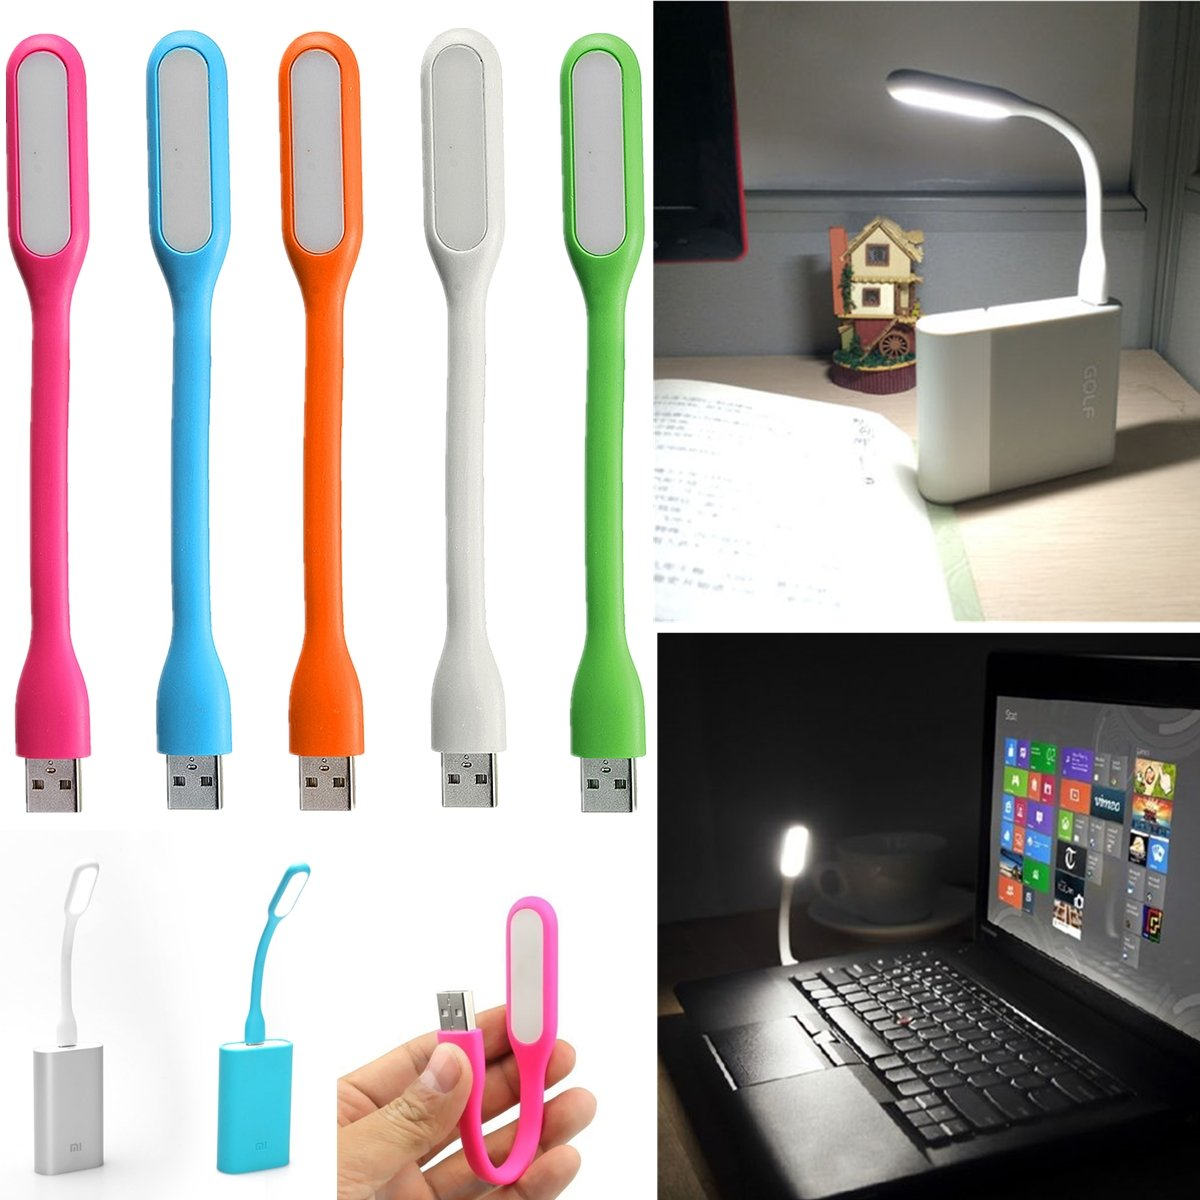 Portable LED USB Light For Computer Notebook PC Laptop Power Bank, Rose pink blue green orange